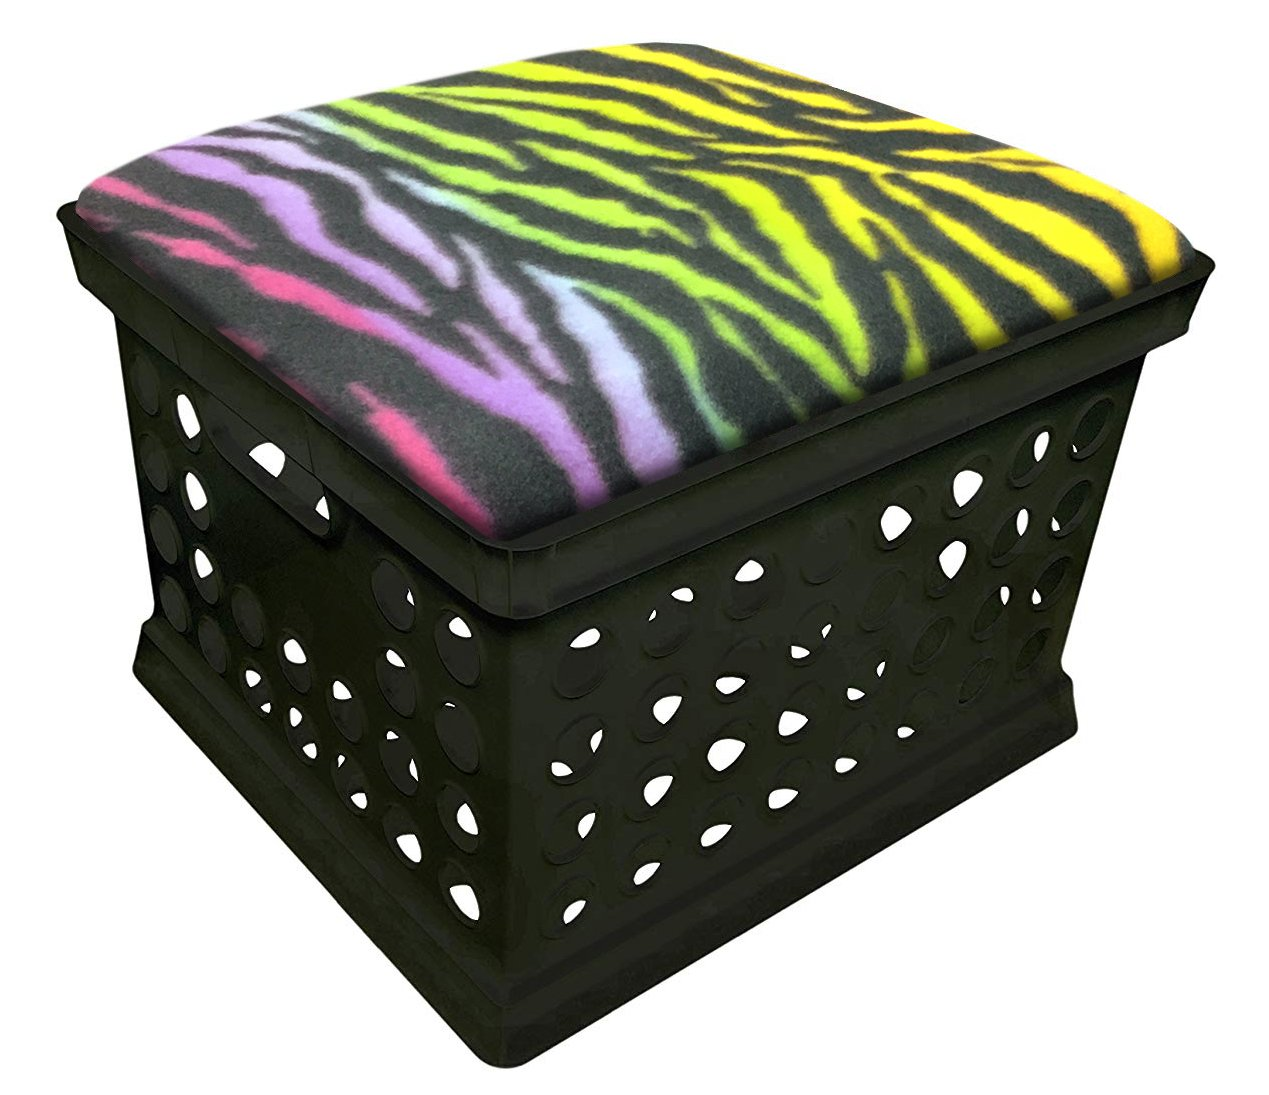 Black Utility Crate Storage Container Ottoman Bench Stool for Office/Home/School/Preschool with Your Choice of a Colorful Zebra Pattern Fleece and a Free Flashlight! (Rainbow)